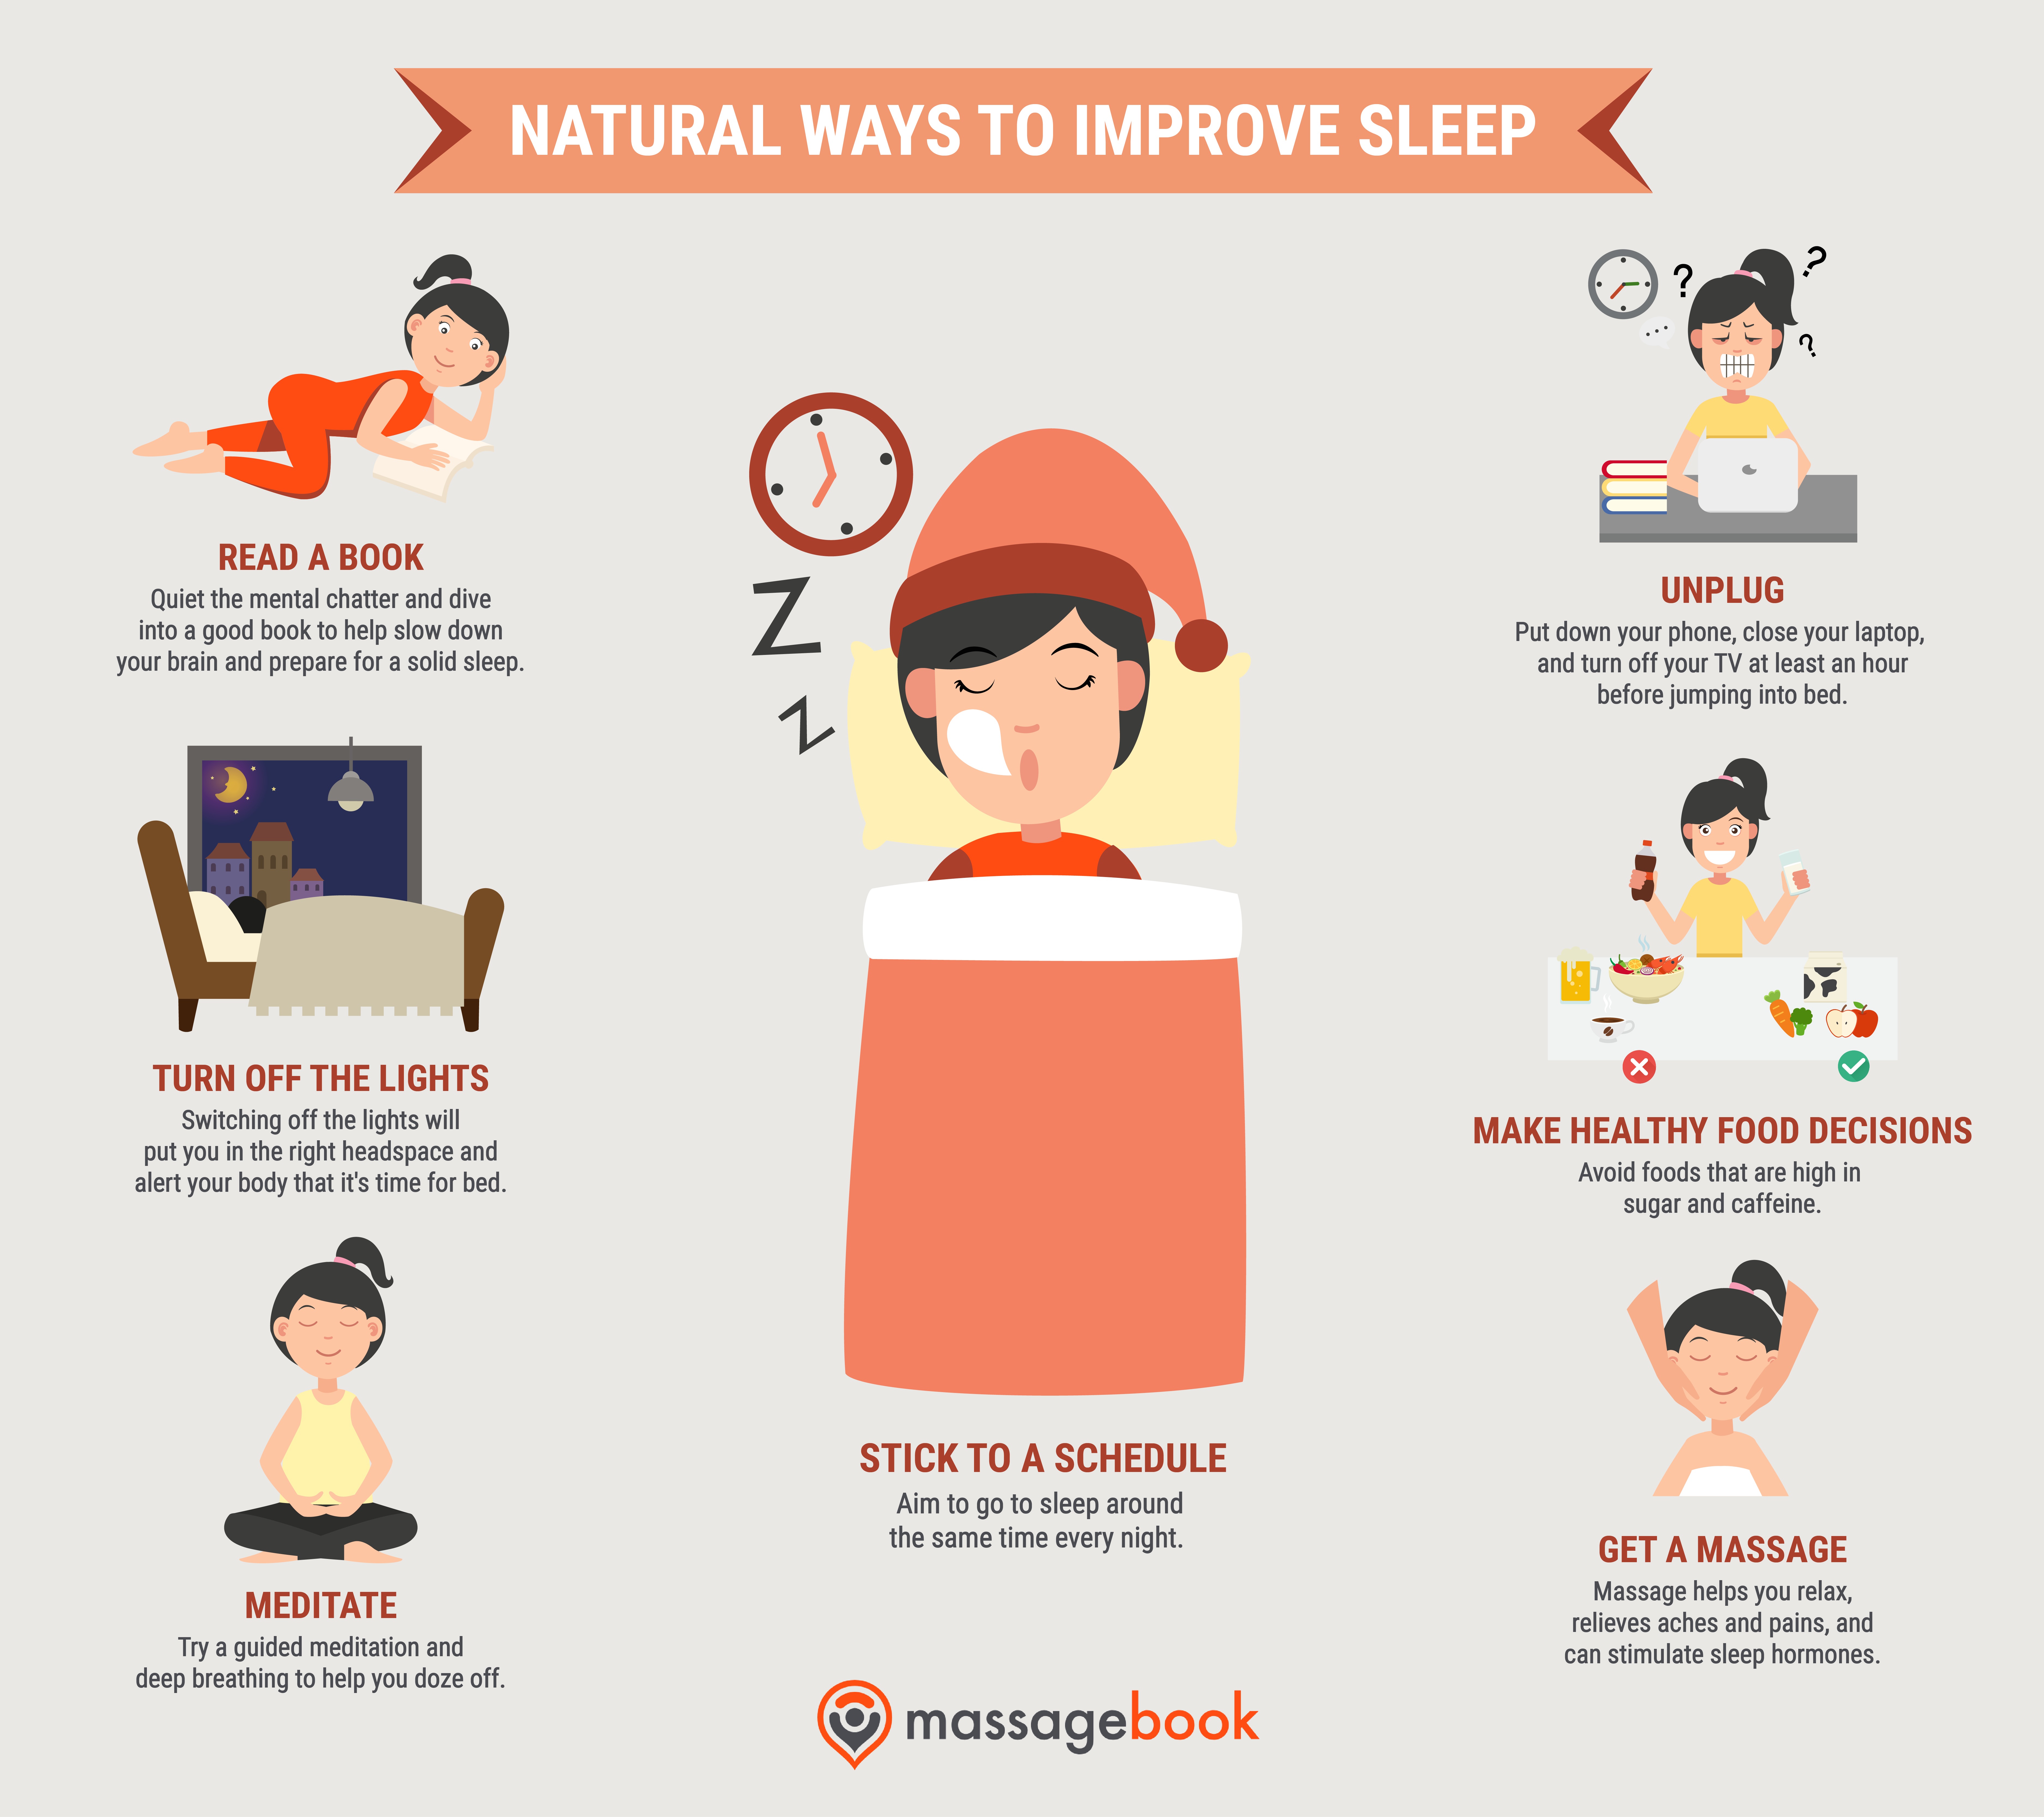 Natural_Ways_to_Improve_Sleep_Infographic.png